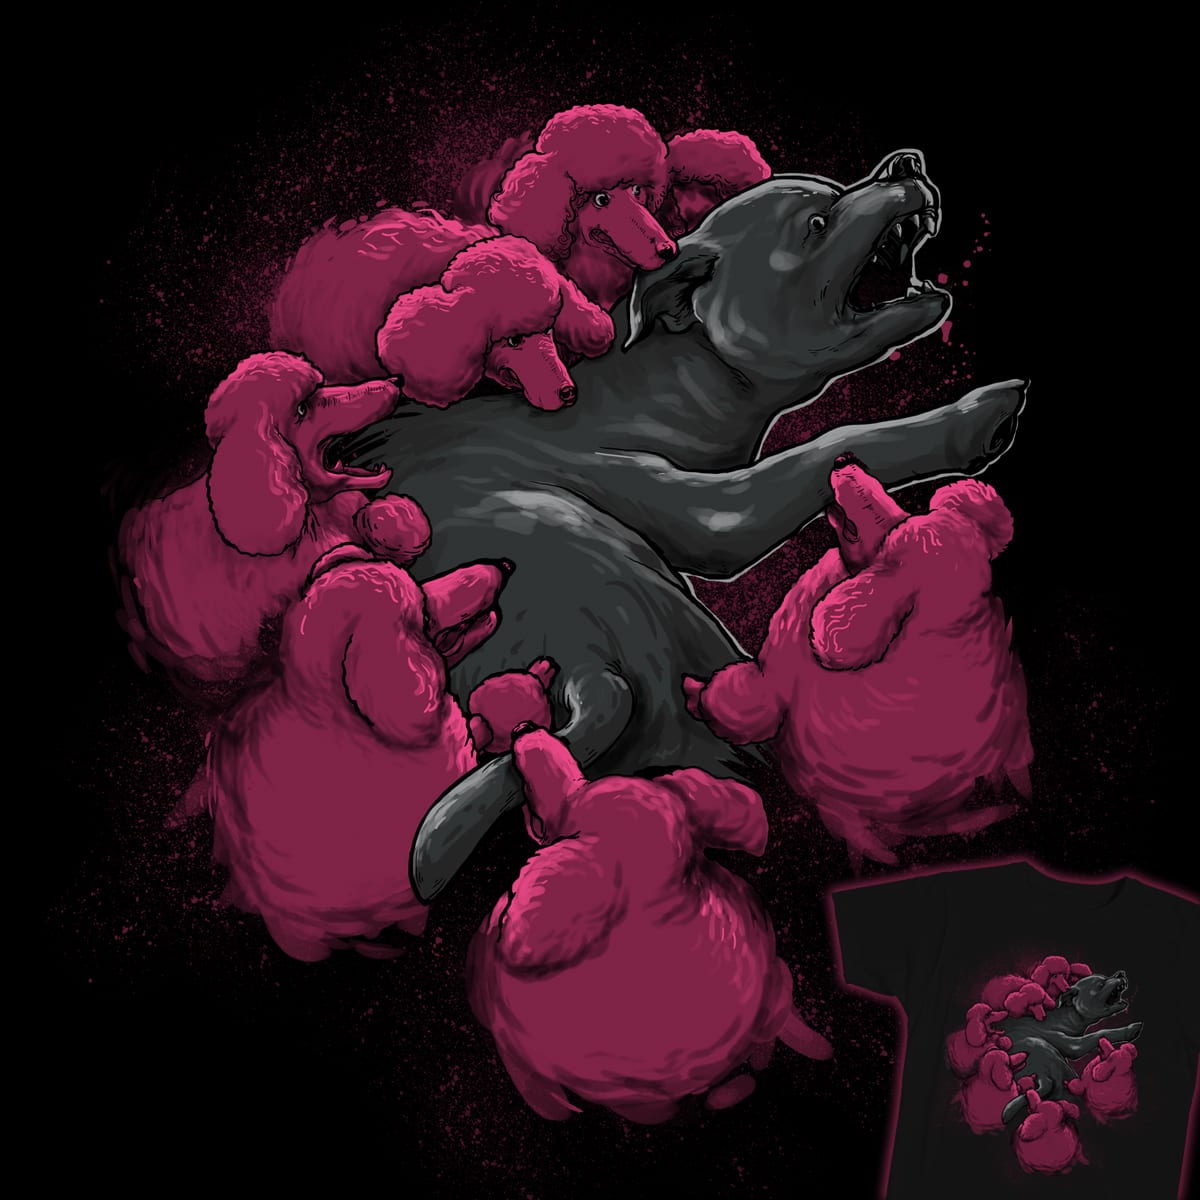 PINK MARTINIS by RGRLV and ourgraphicfaith on Threadless